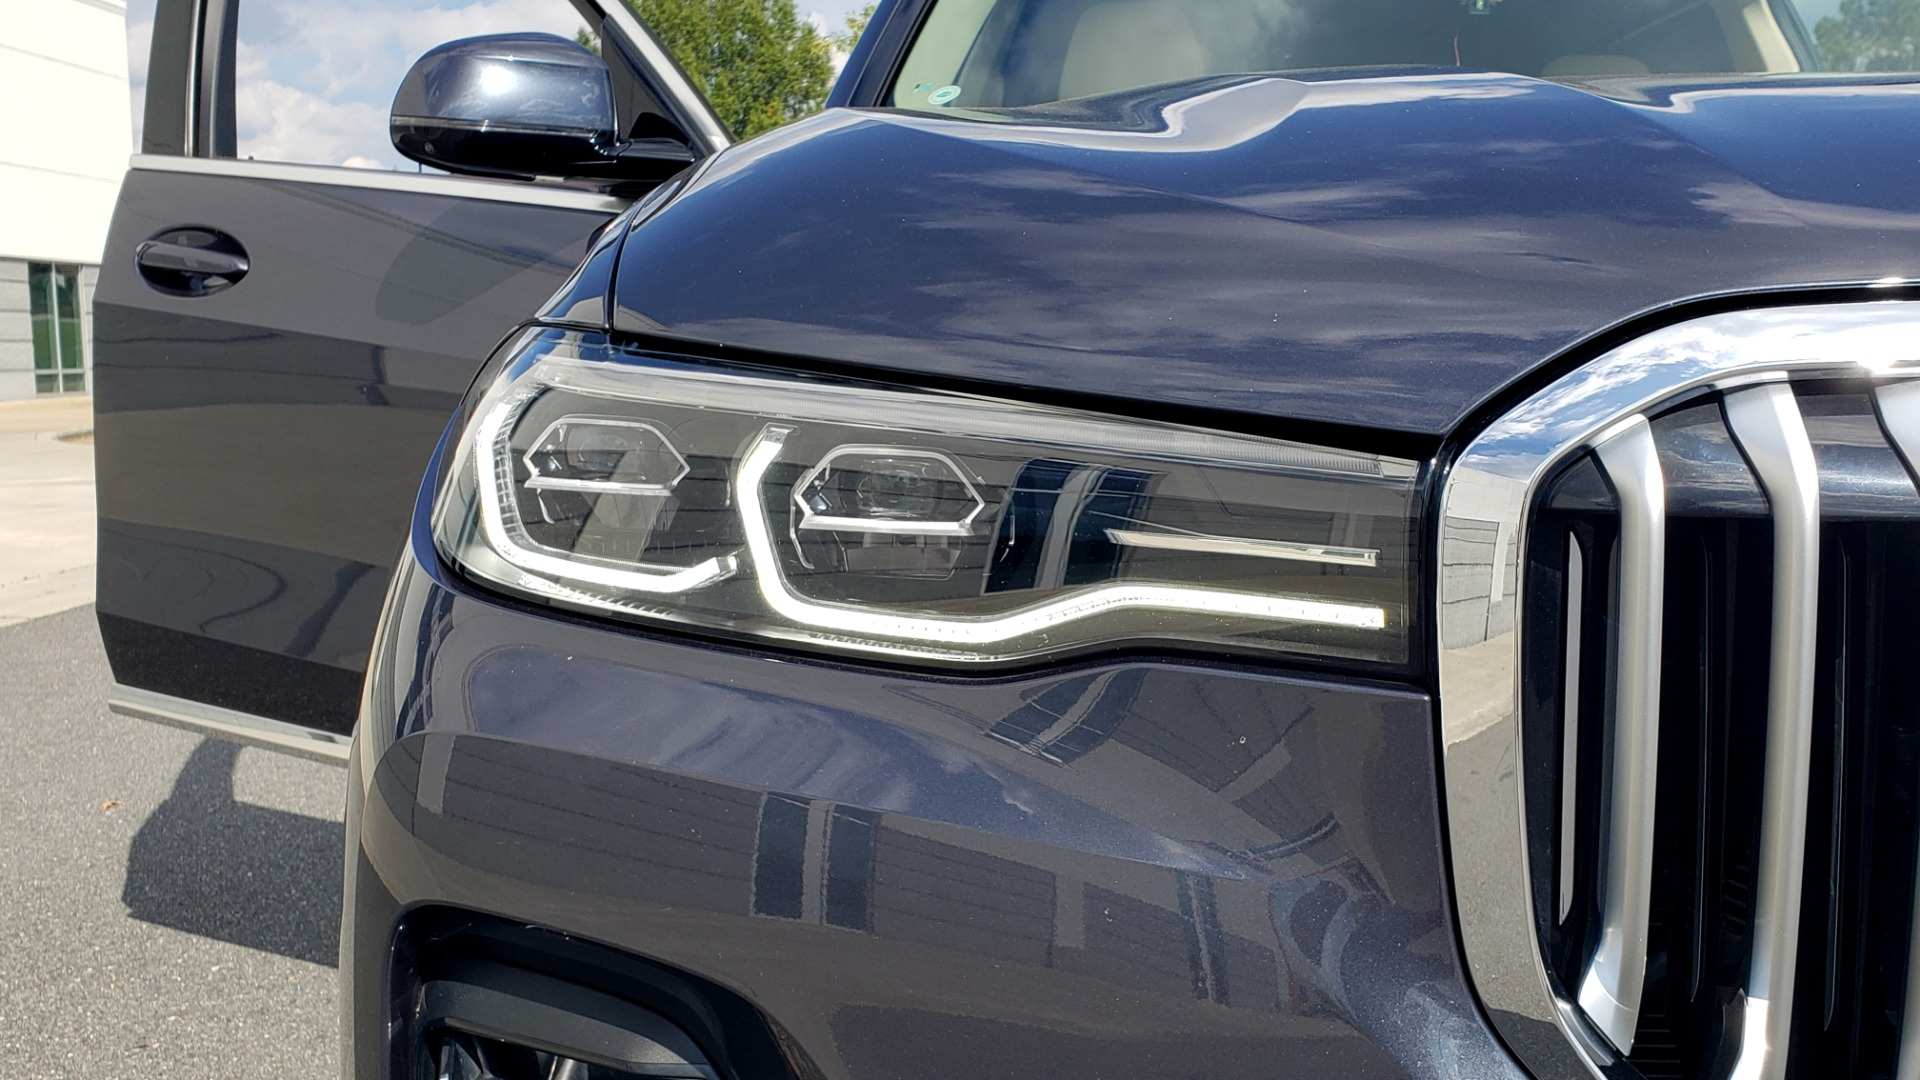 Used 2019 BMW X7 XDRIVE40I PREMIUM / LUXURY / COLD WEATHER / PARK ASST / PANORAMIC SKY / TOW for sale $75,999 at Formula Imports in Charlotte NC 28227 28